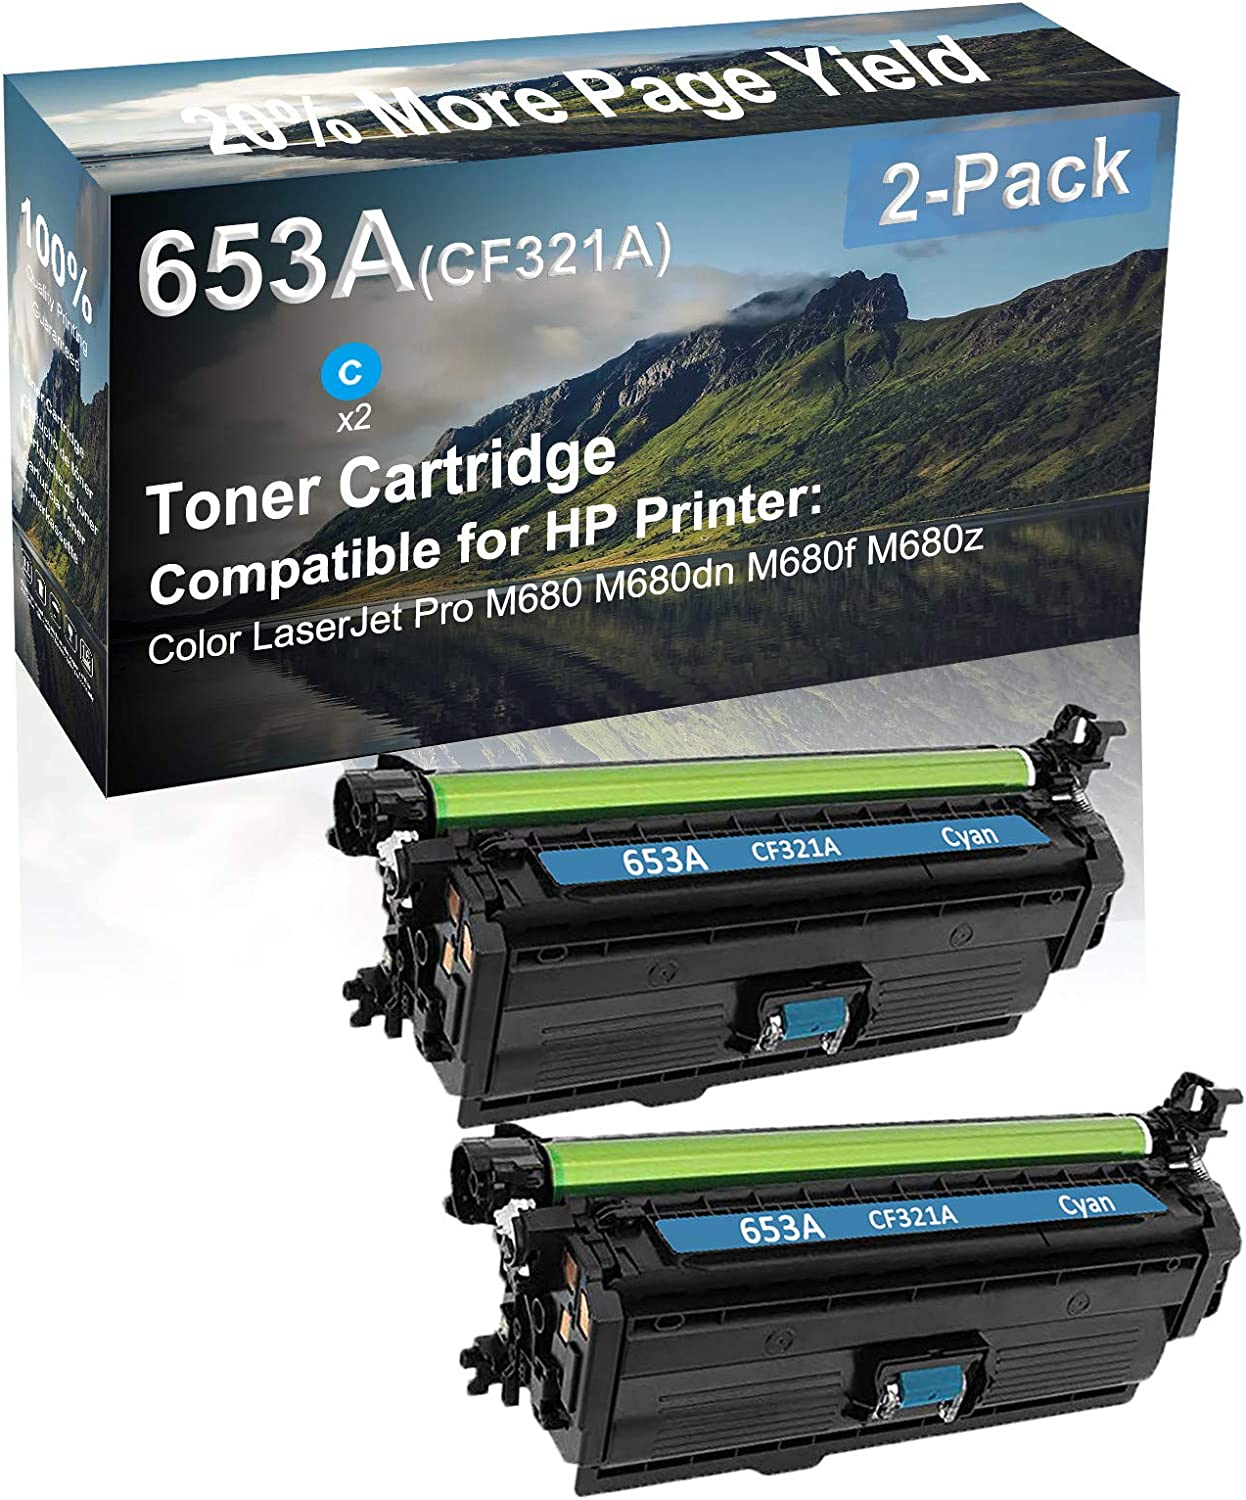 2-Pack (Cyan) Compatible M680 M680dn M680f M680z Printer Toner Cartridge High Capacity Replacement for HP (CF321A) 653A Toner Cartridge